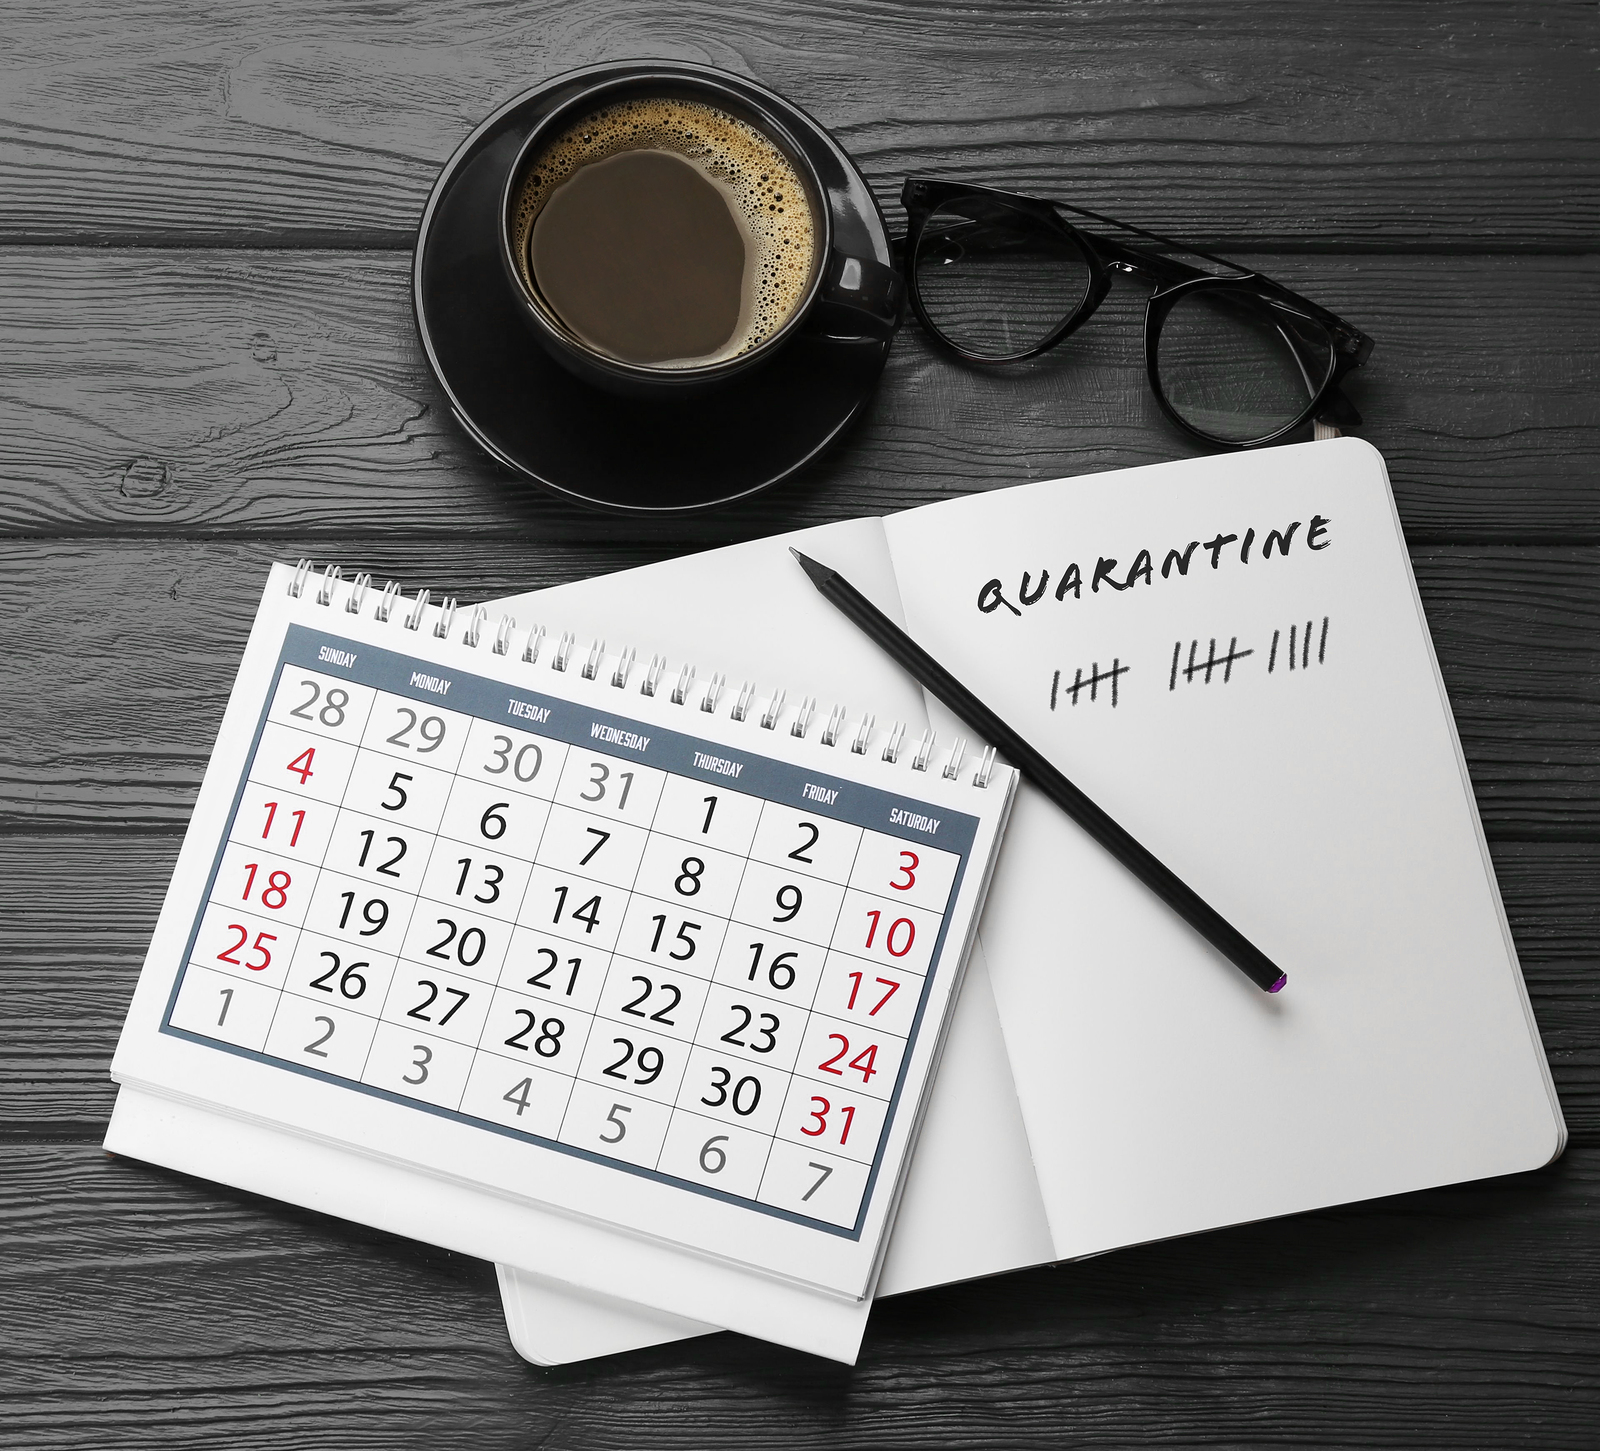 Extended deadlines represented by calendar and note pad